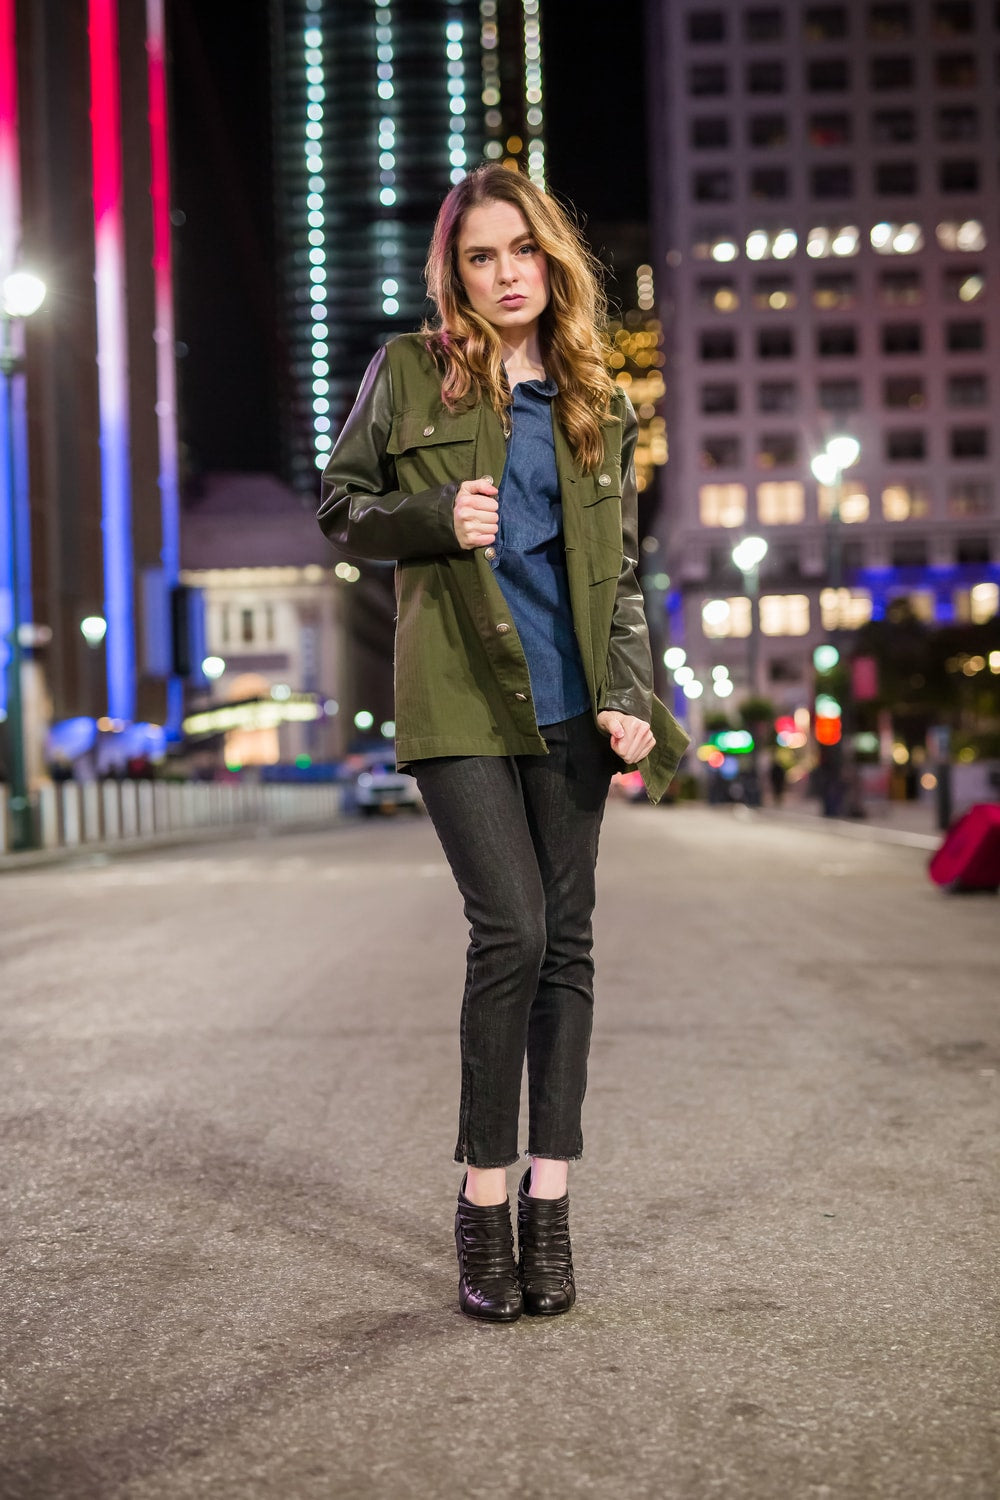 Military Jacket With Leather Top Sleeves